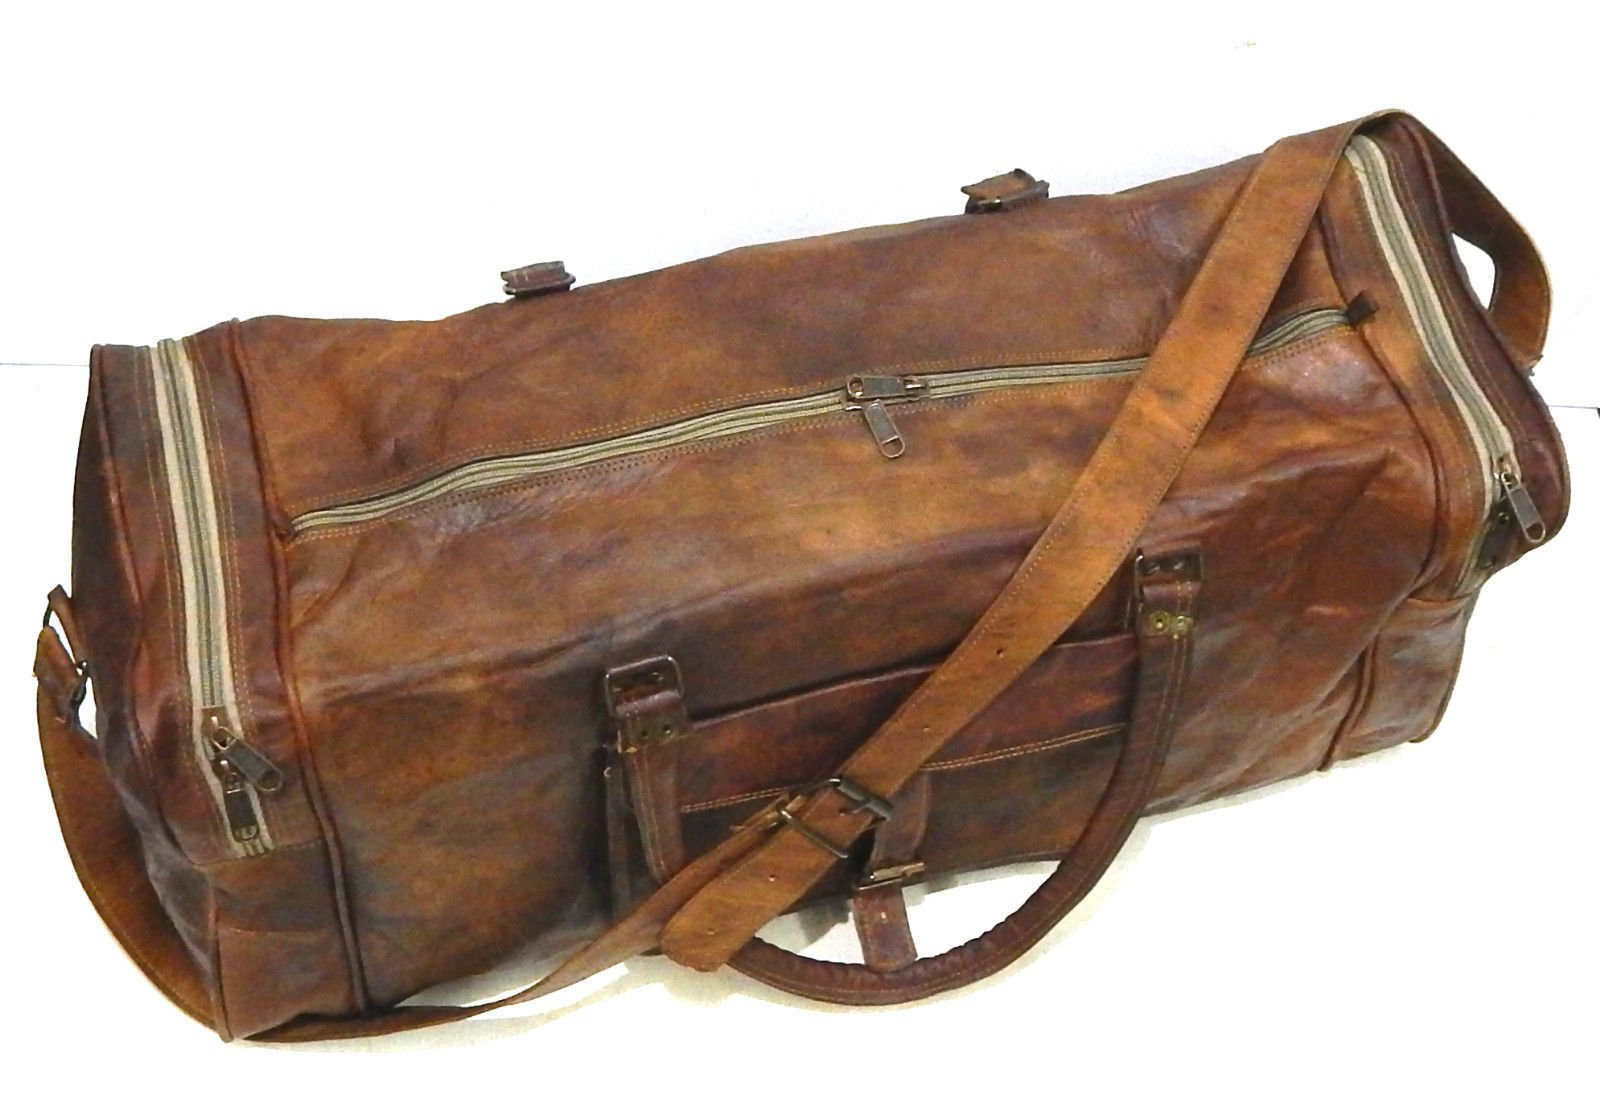 Firu-Handmade 24'' Vintage Style Leather Brown Duffel Gym Sports Luggage Bag Handmade by Firu-Handmade (Image #3)